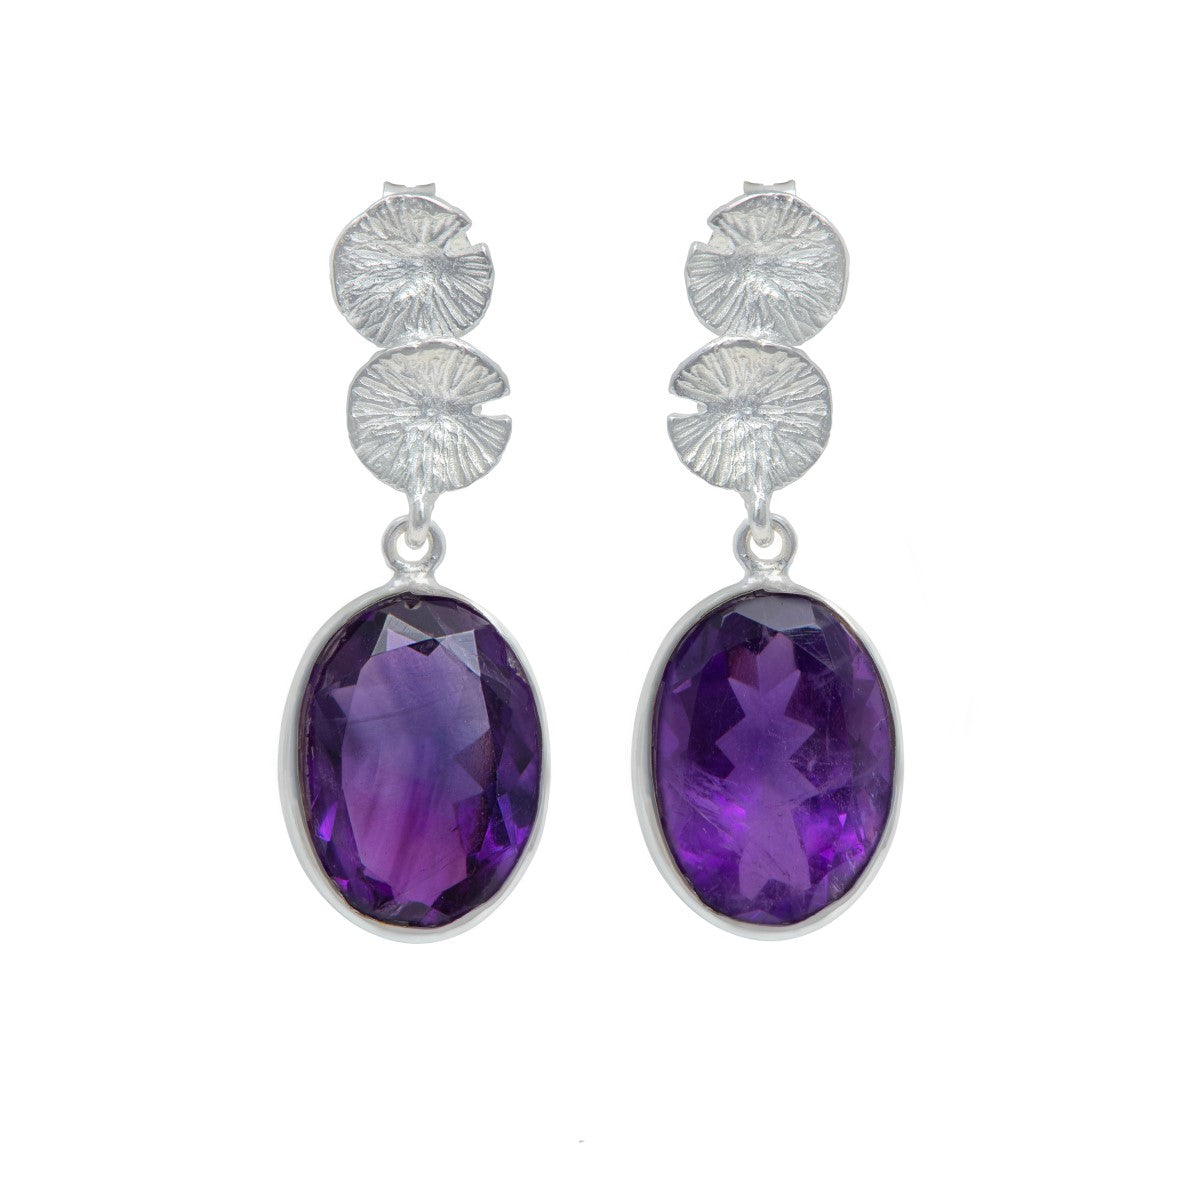 Lily Pad Earrings in Sterling Silver with an Amethyst Gemstone Drop